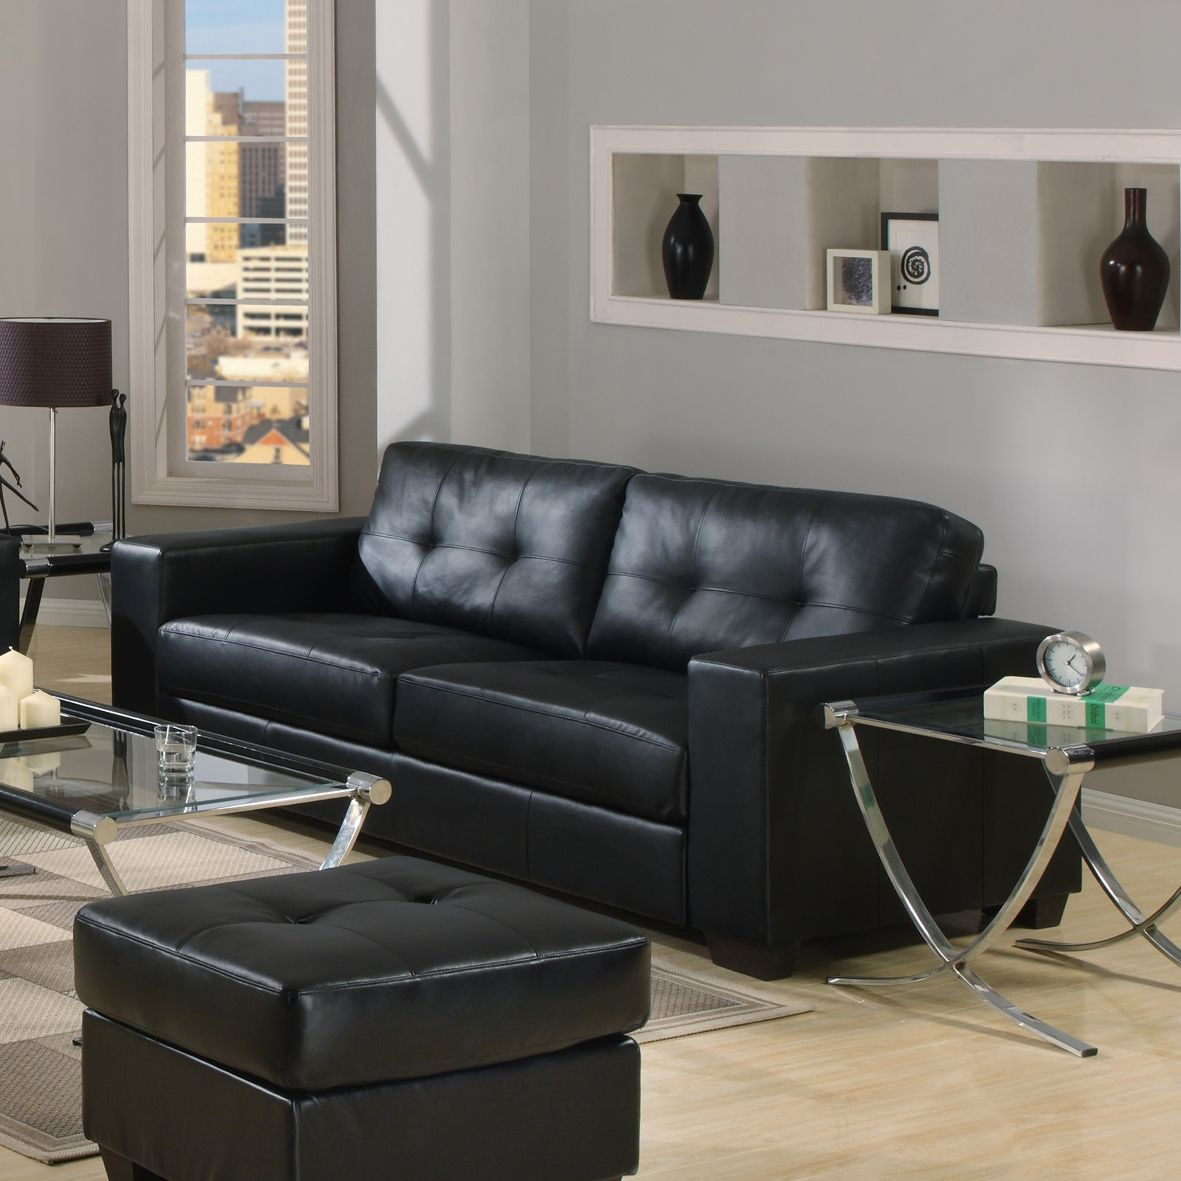 Awesome Black Sofas Luxury Black Sofas 12 Modern Sofa